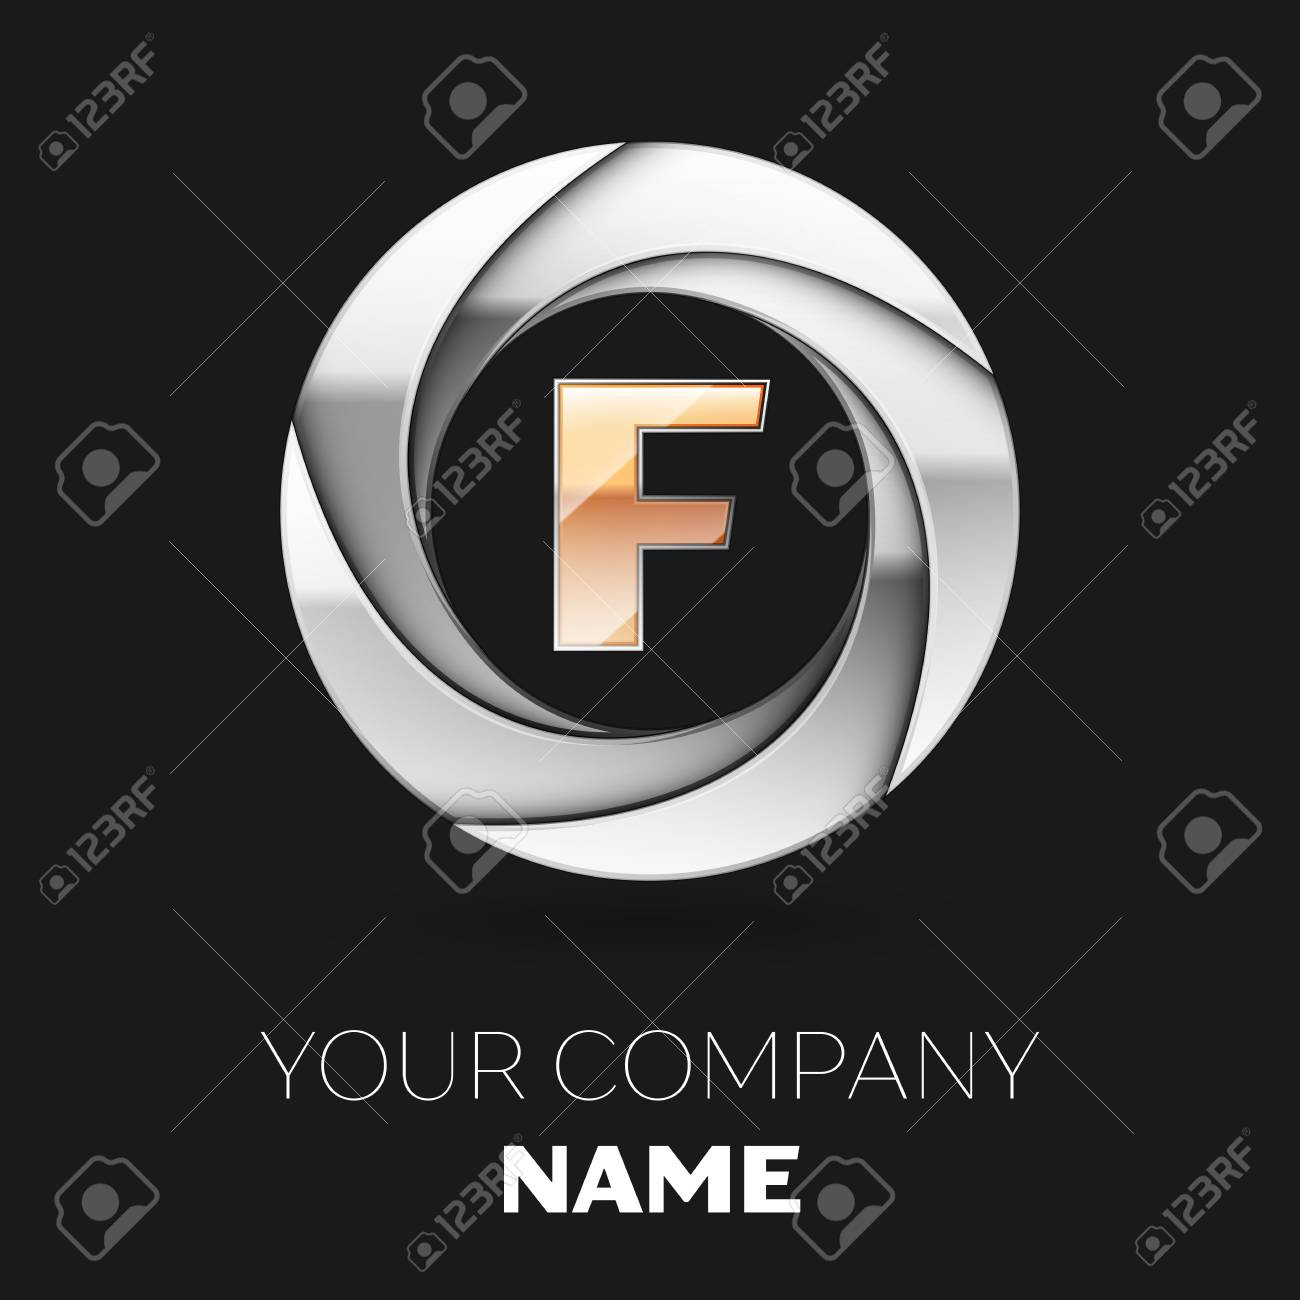 98d2eb850320ed Vector template for your design. Realistic Golden Letter F logo symbol in  the silver colorful circle shape on black background.